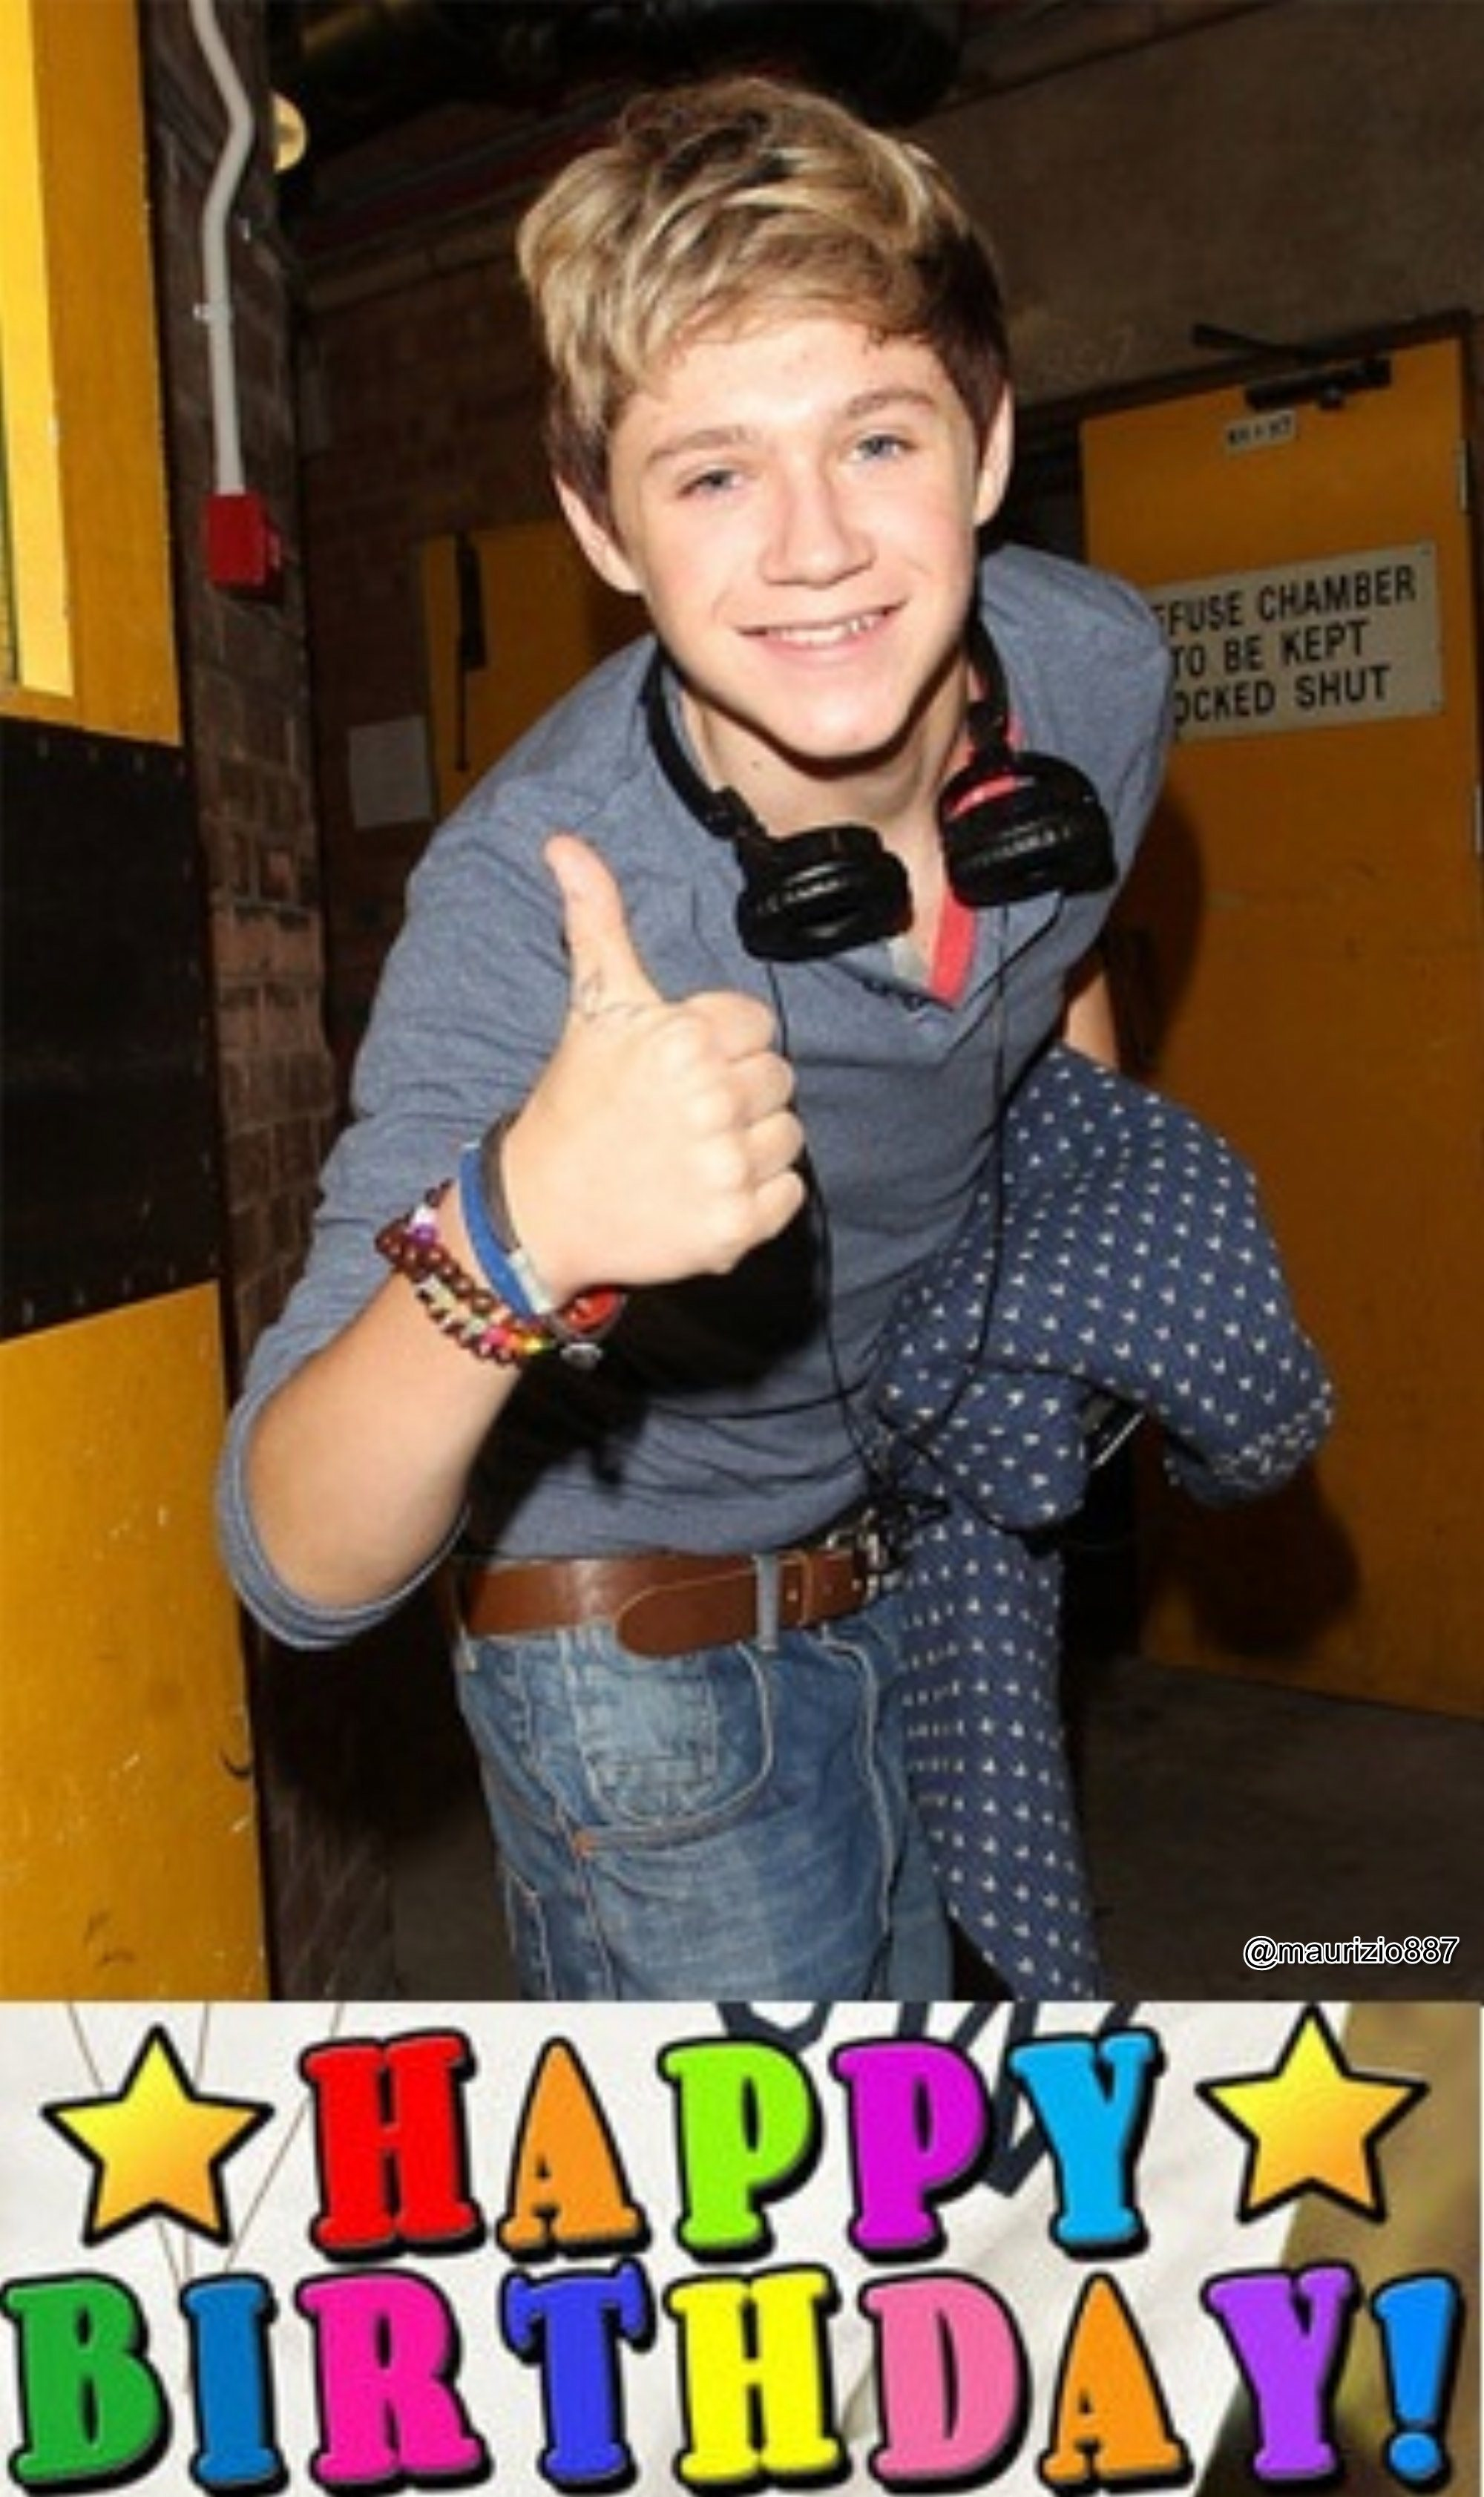 http://images6.fanpop.com/image/photos/32100000/NIall-Horan-Happy-birthday-2012-one-direction-32166535-2000-3365.jpg